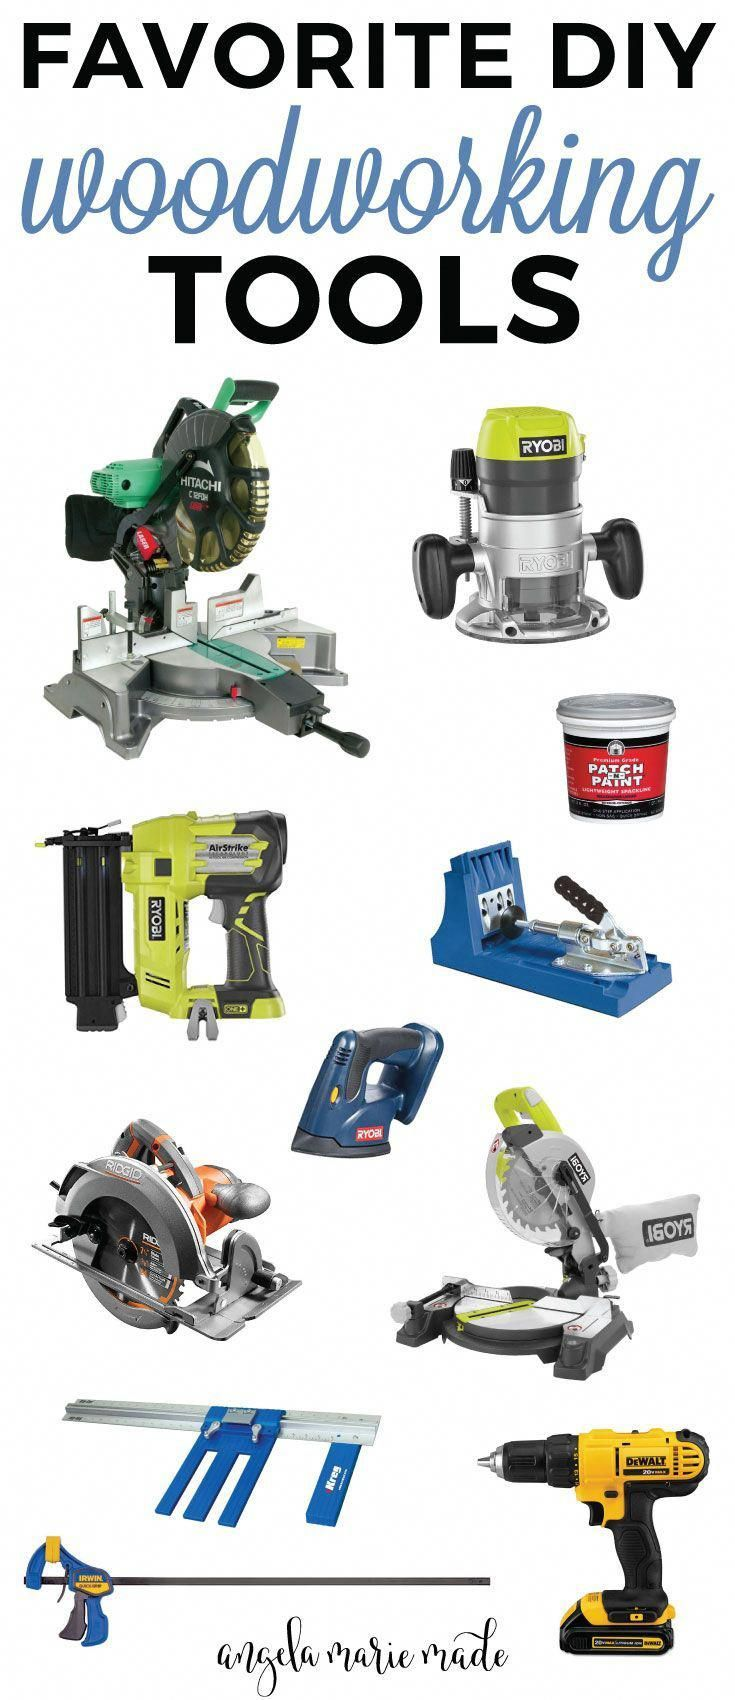 7 Essential Woodworking Power Tools List All Woodworkers